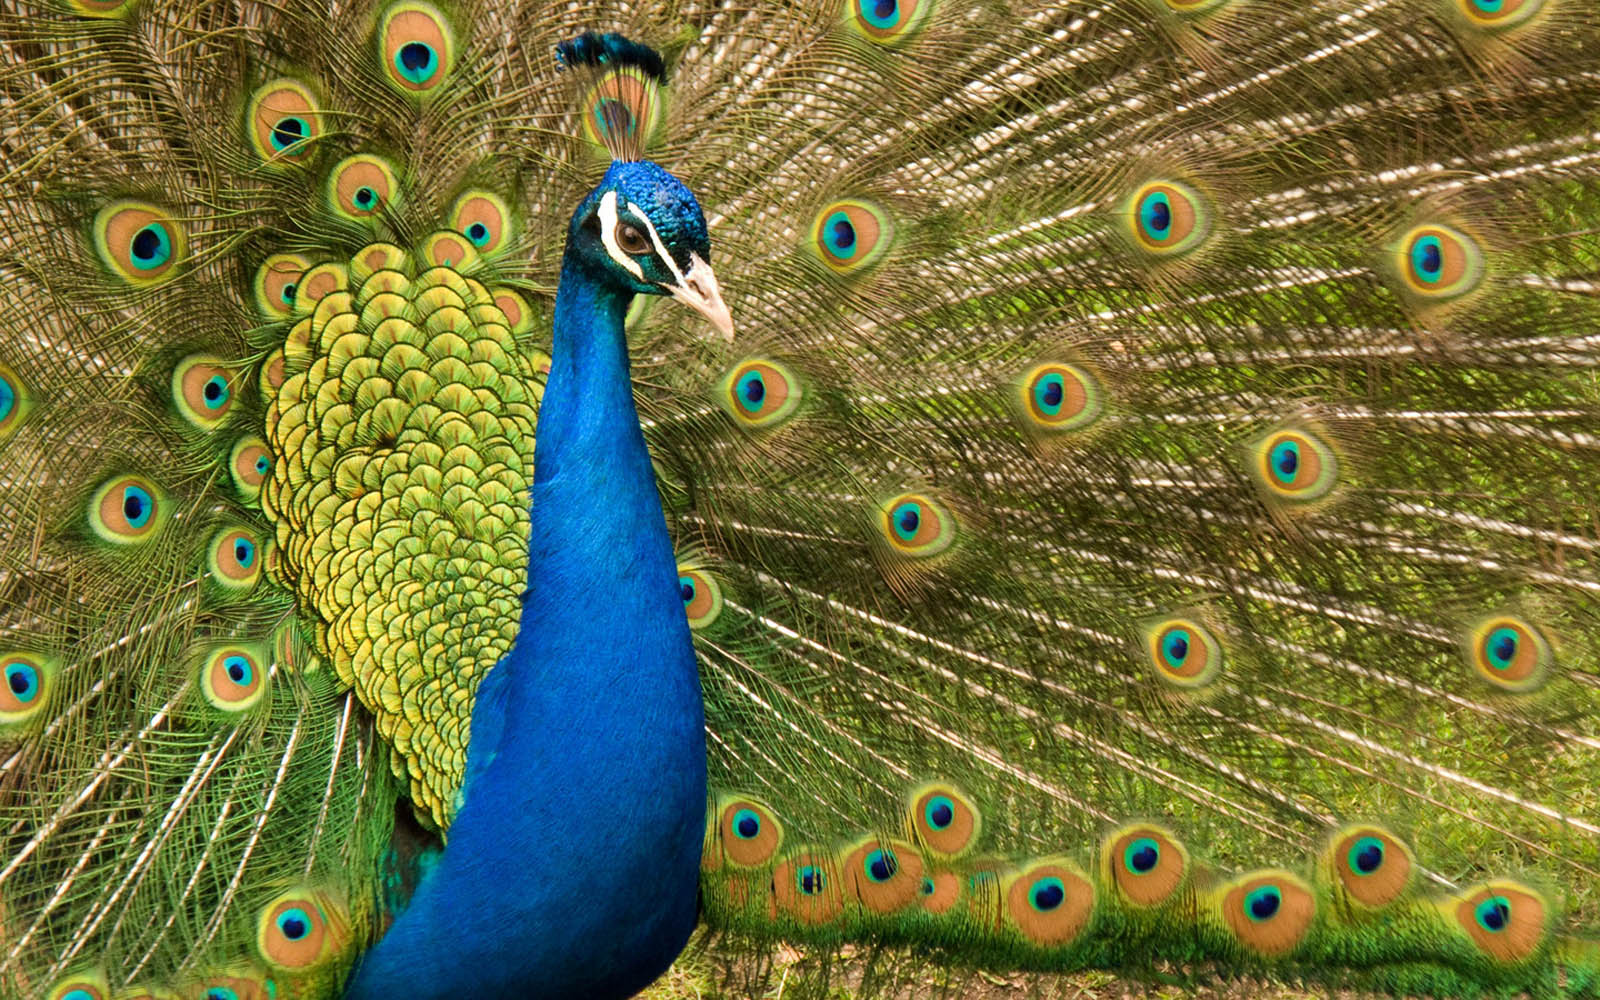 Peacock wallpapers - photo#2